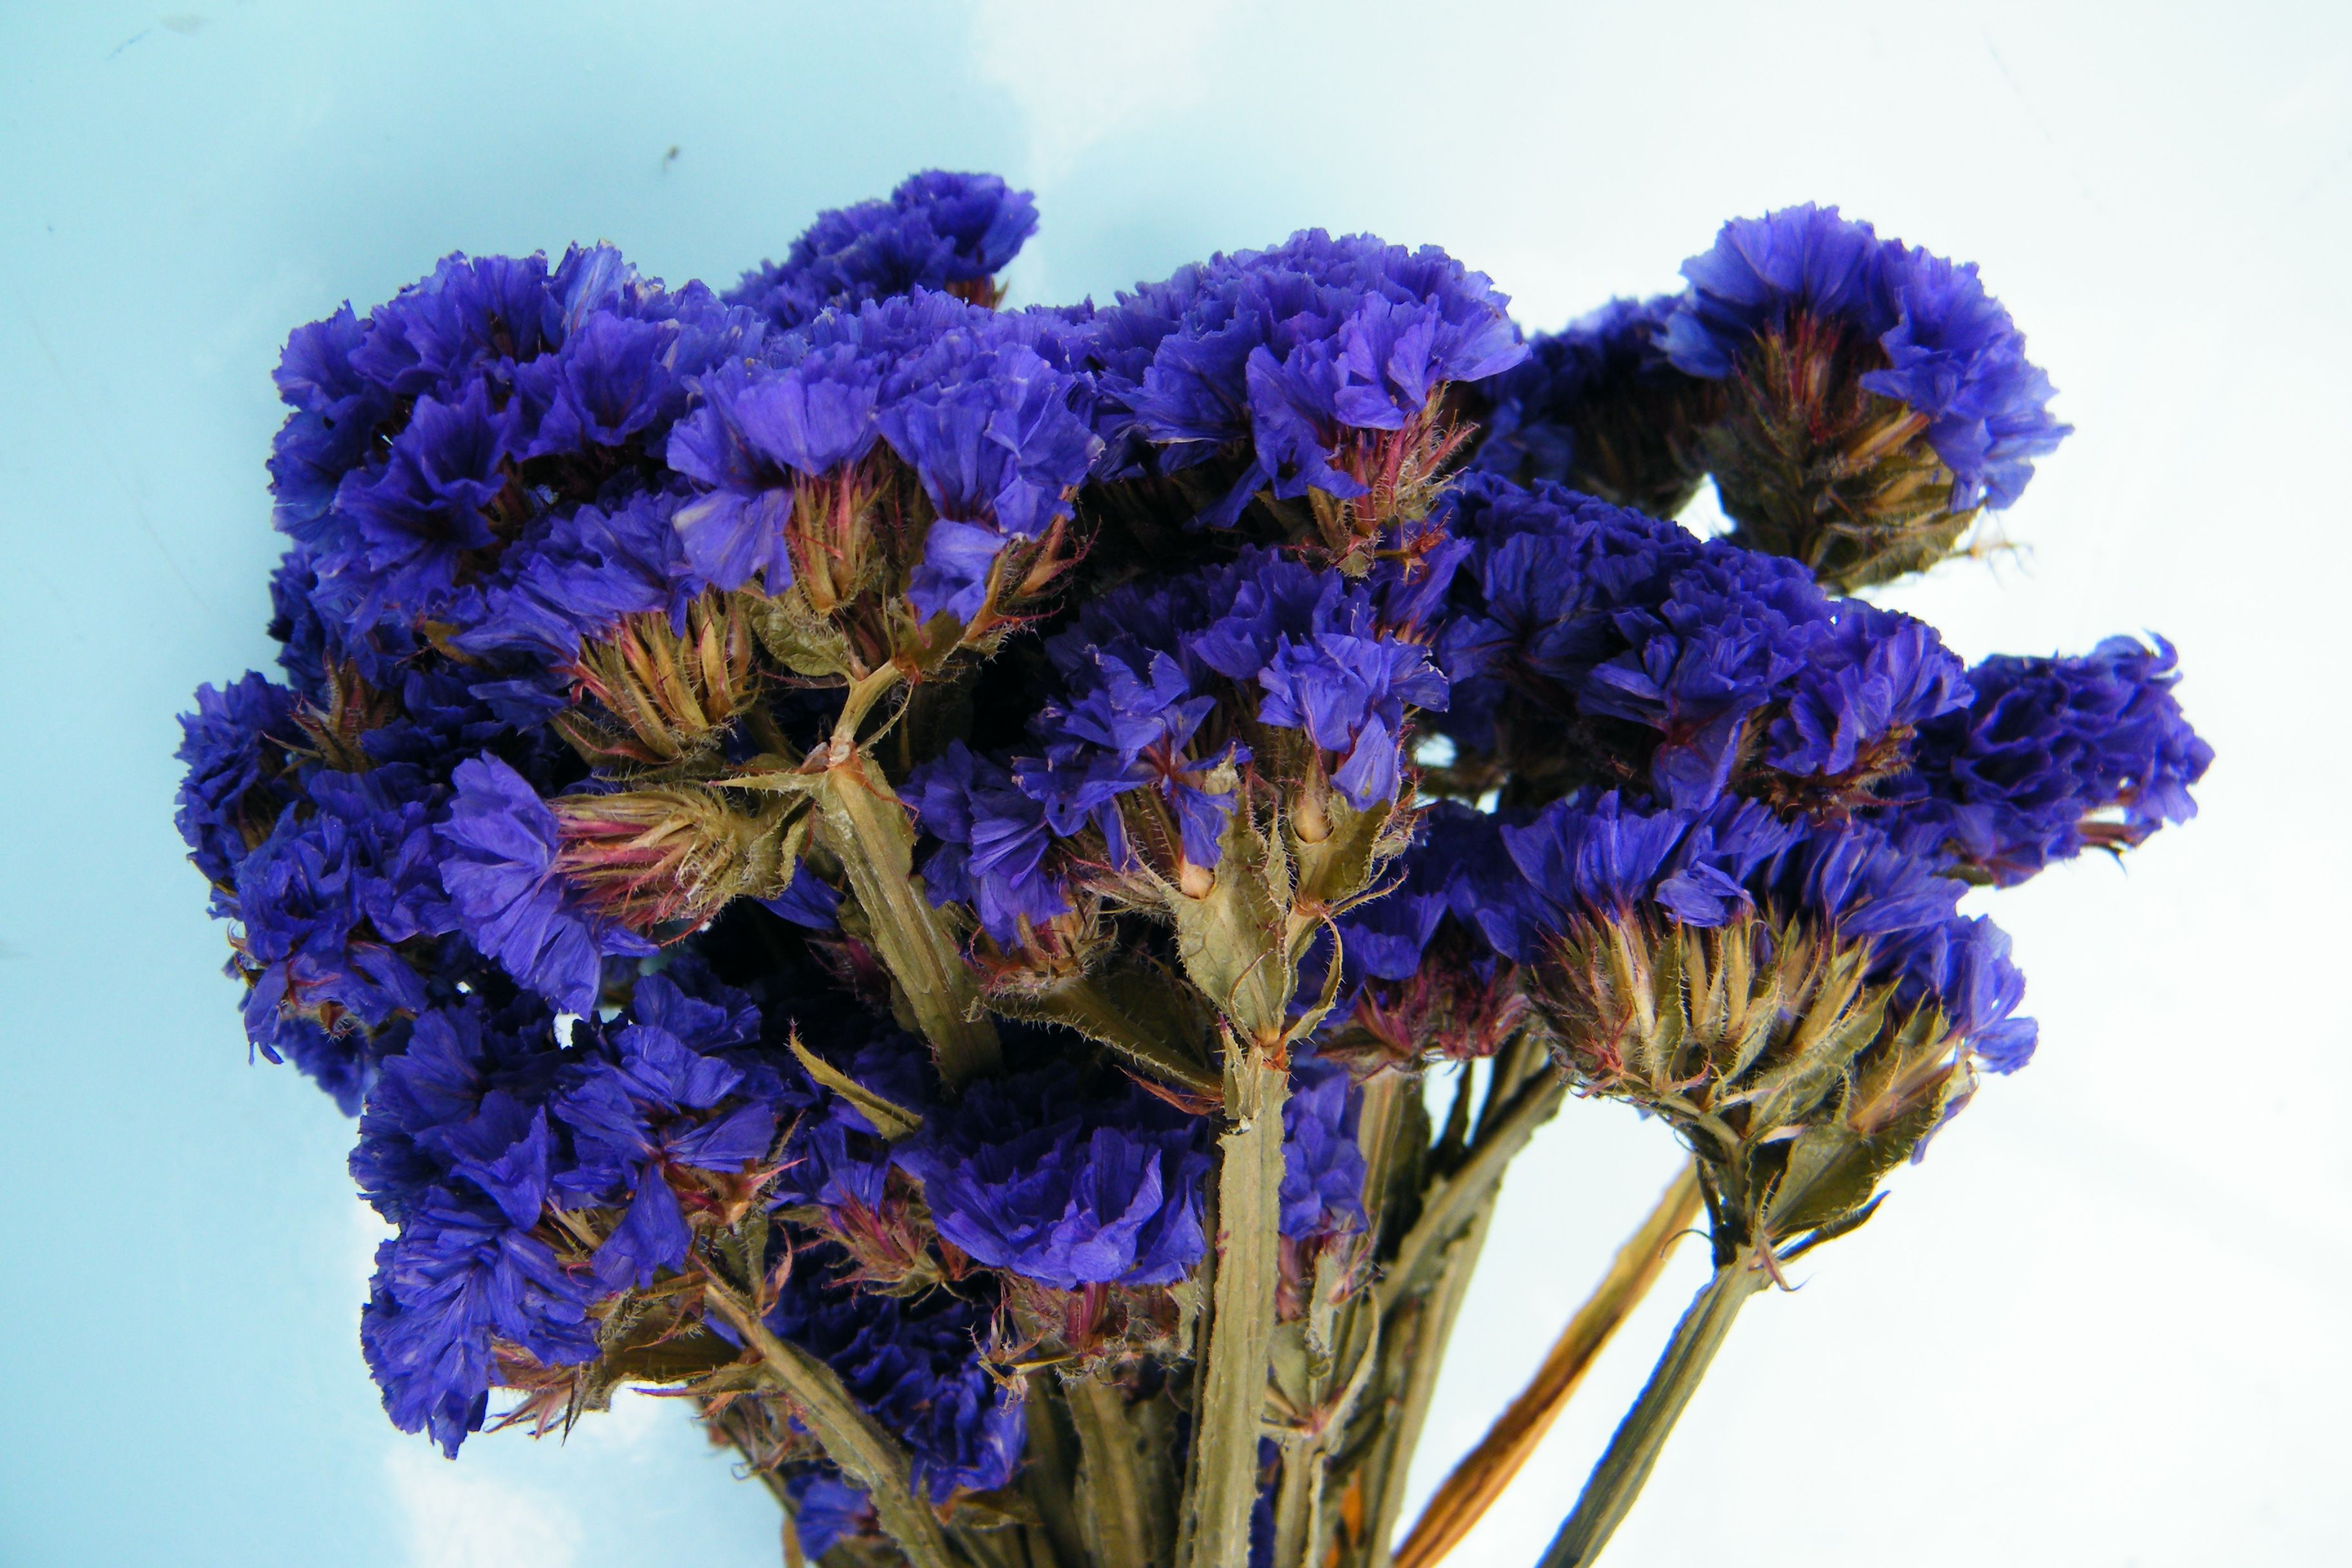 Dried flower bunches modern and traditional from Daisy